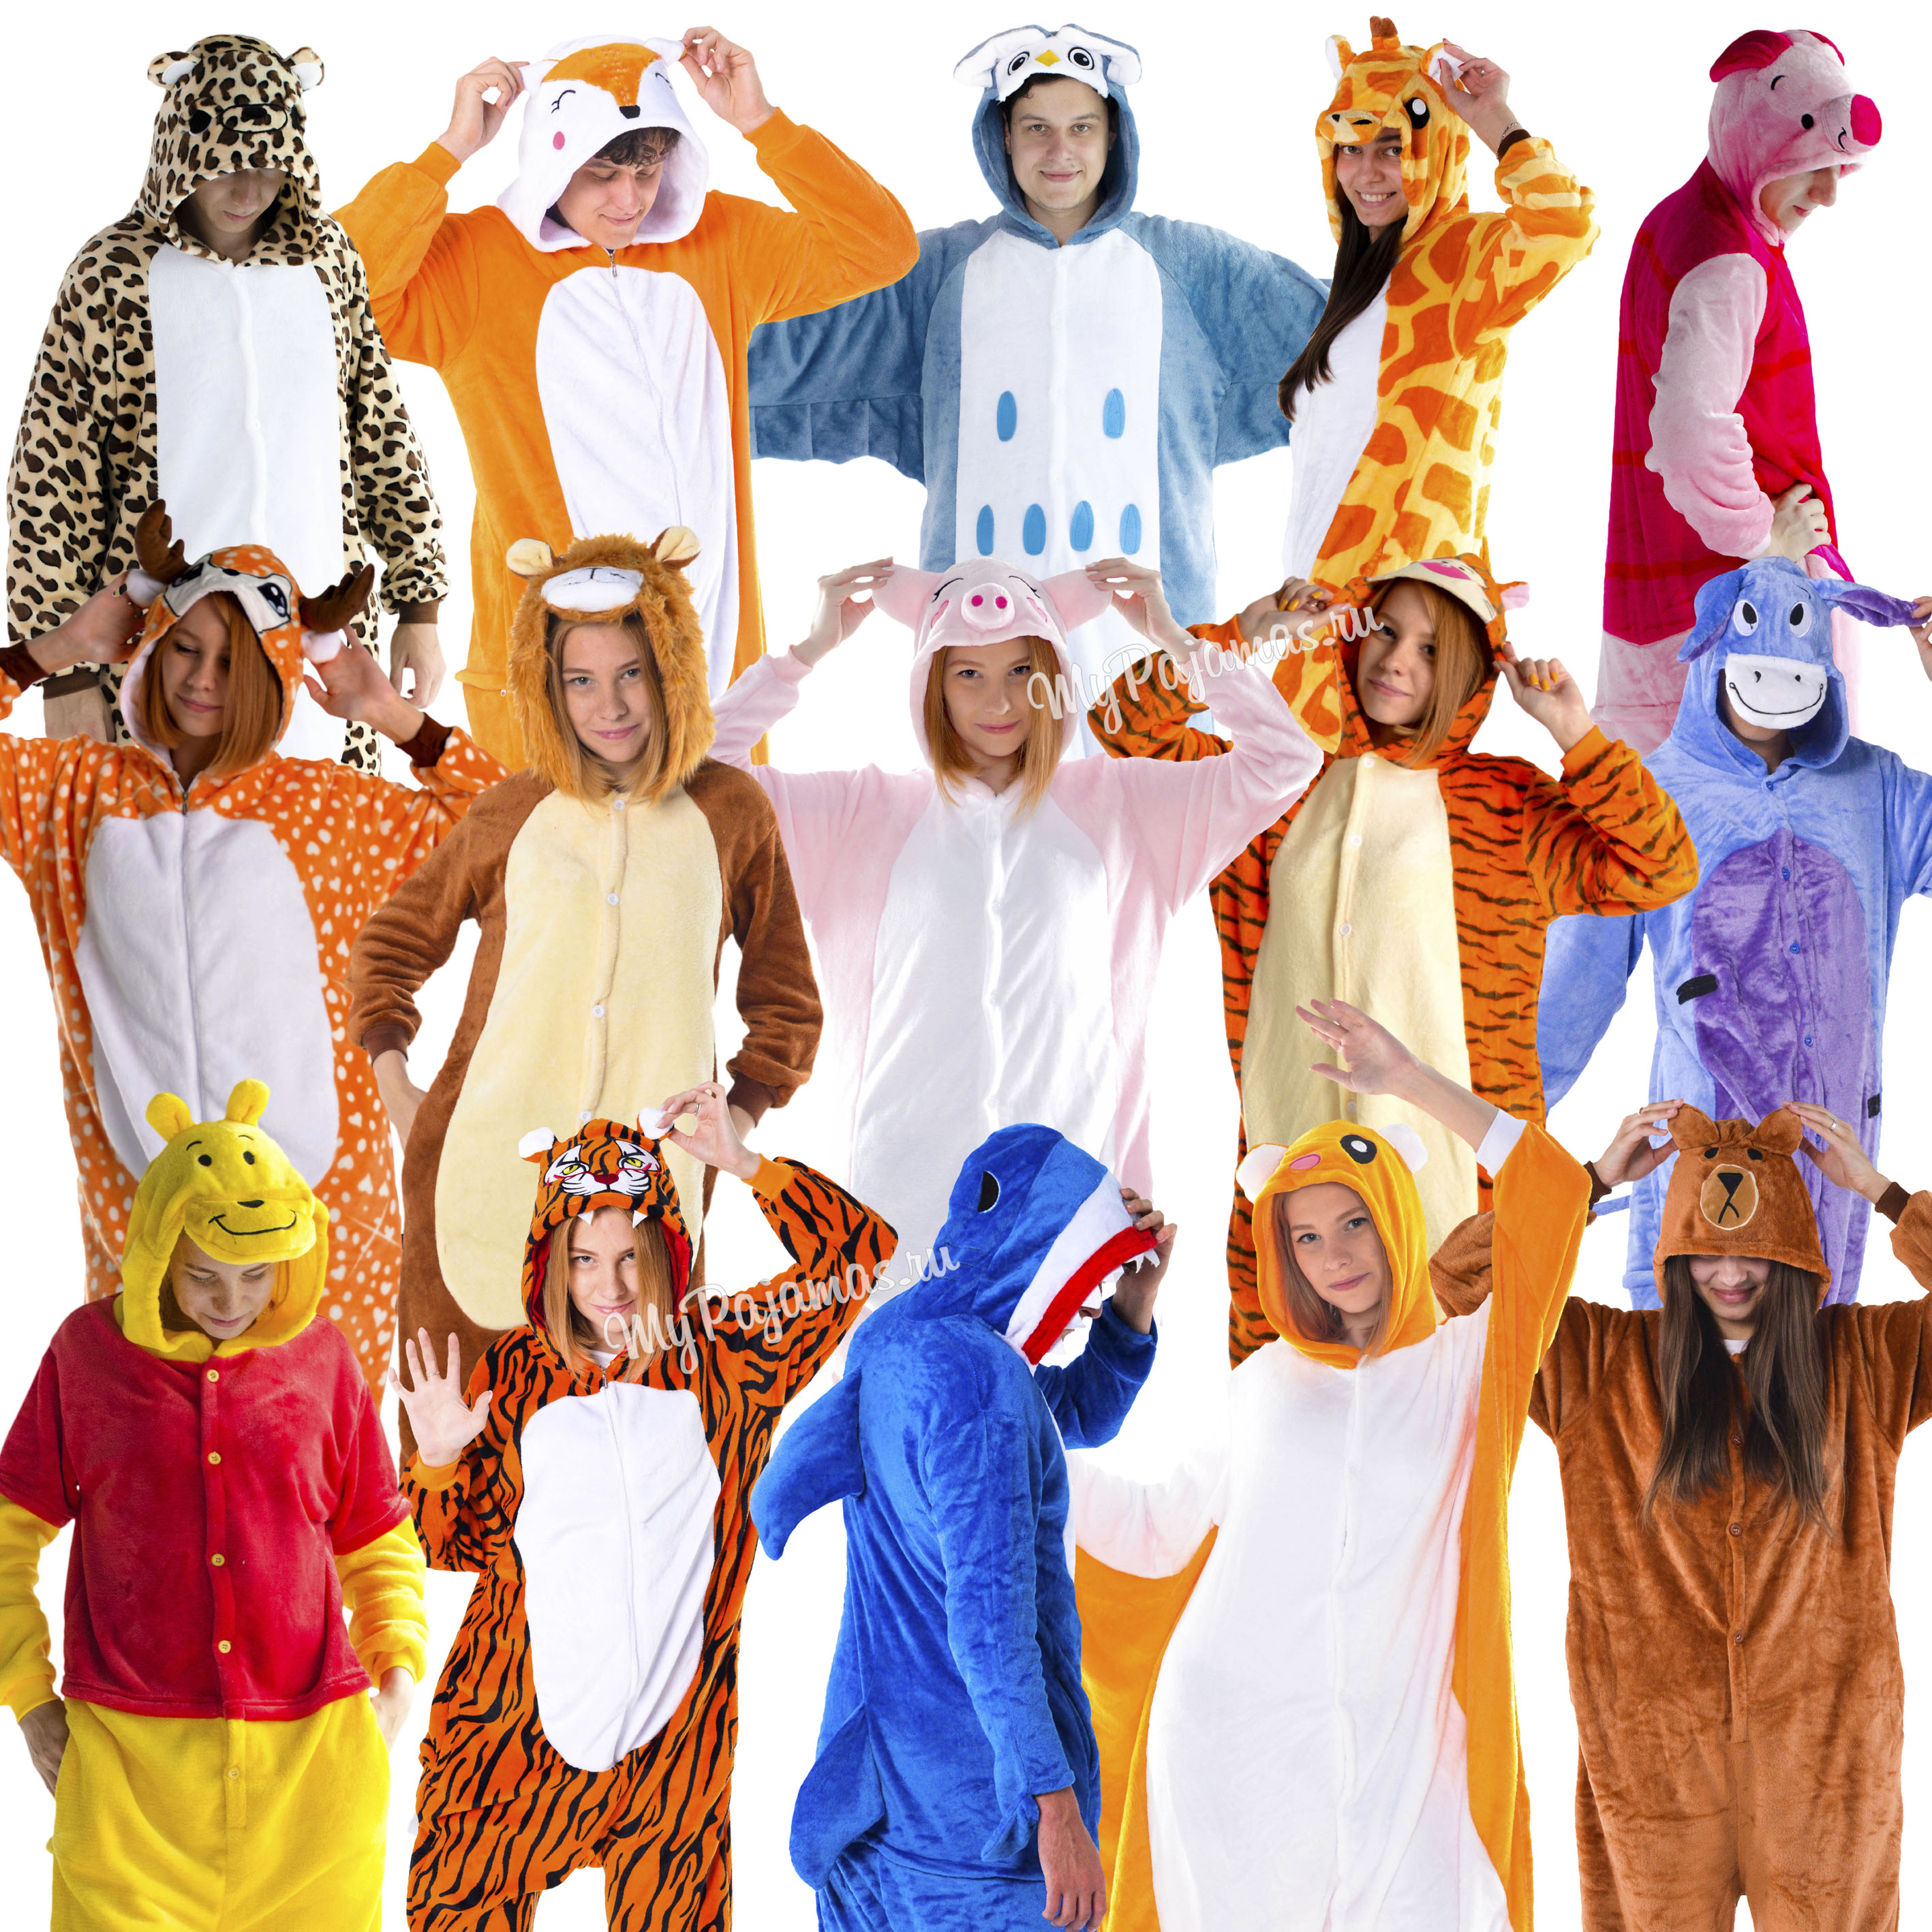 Pajamas Kigurumi Animal Nose, Winnie Pooh Bear, Lion, Bear, Shark, Squirrel Flying Squirrel, Deer, Leopard Sleepwear Women And Men.